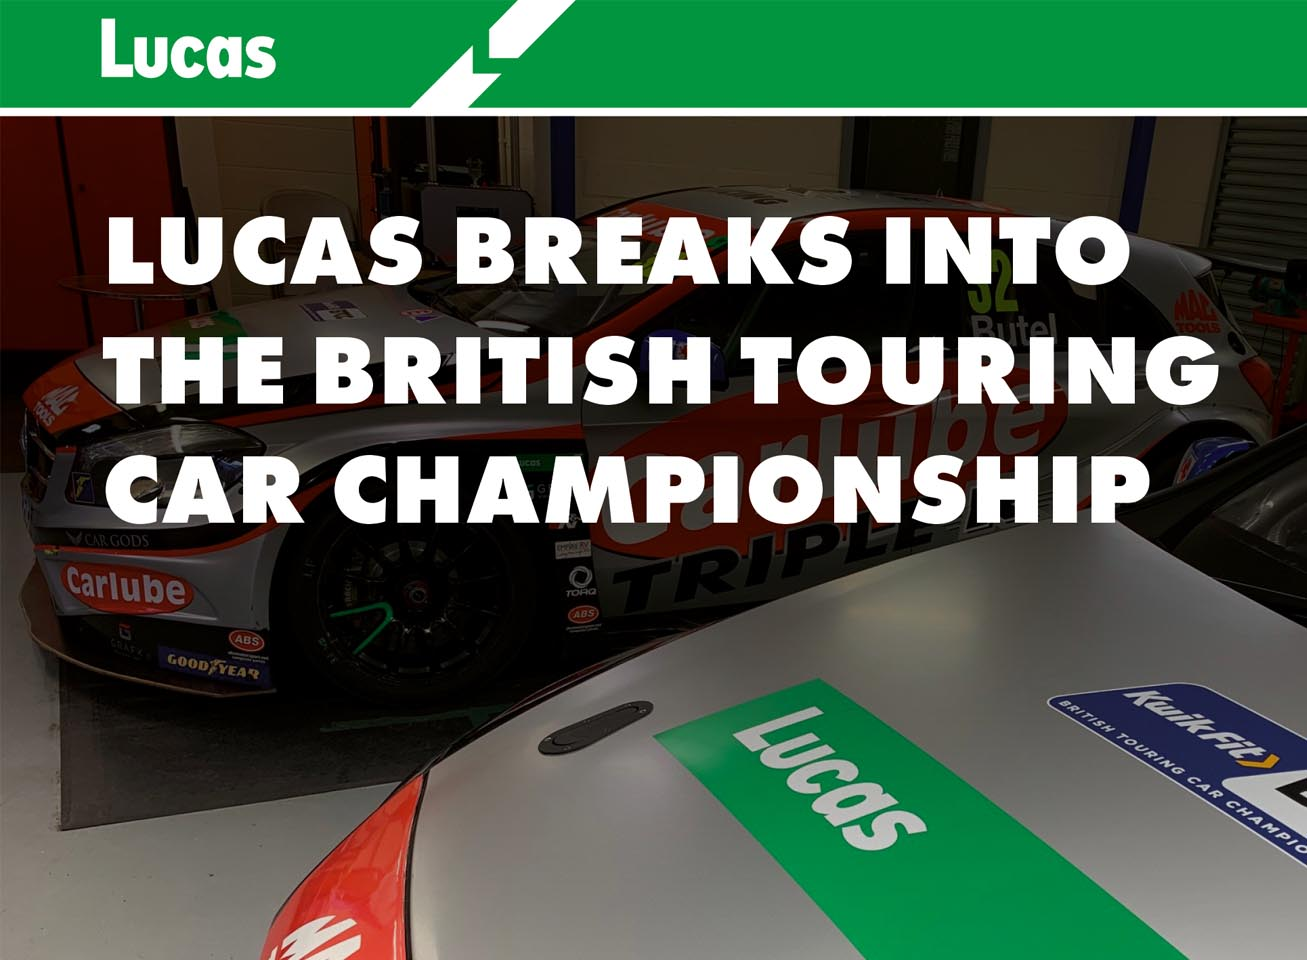 LUCAS BREAKS INTO THE BRITISH TOURING CAR CHAMPIONSHIP